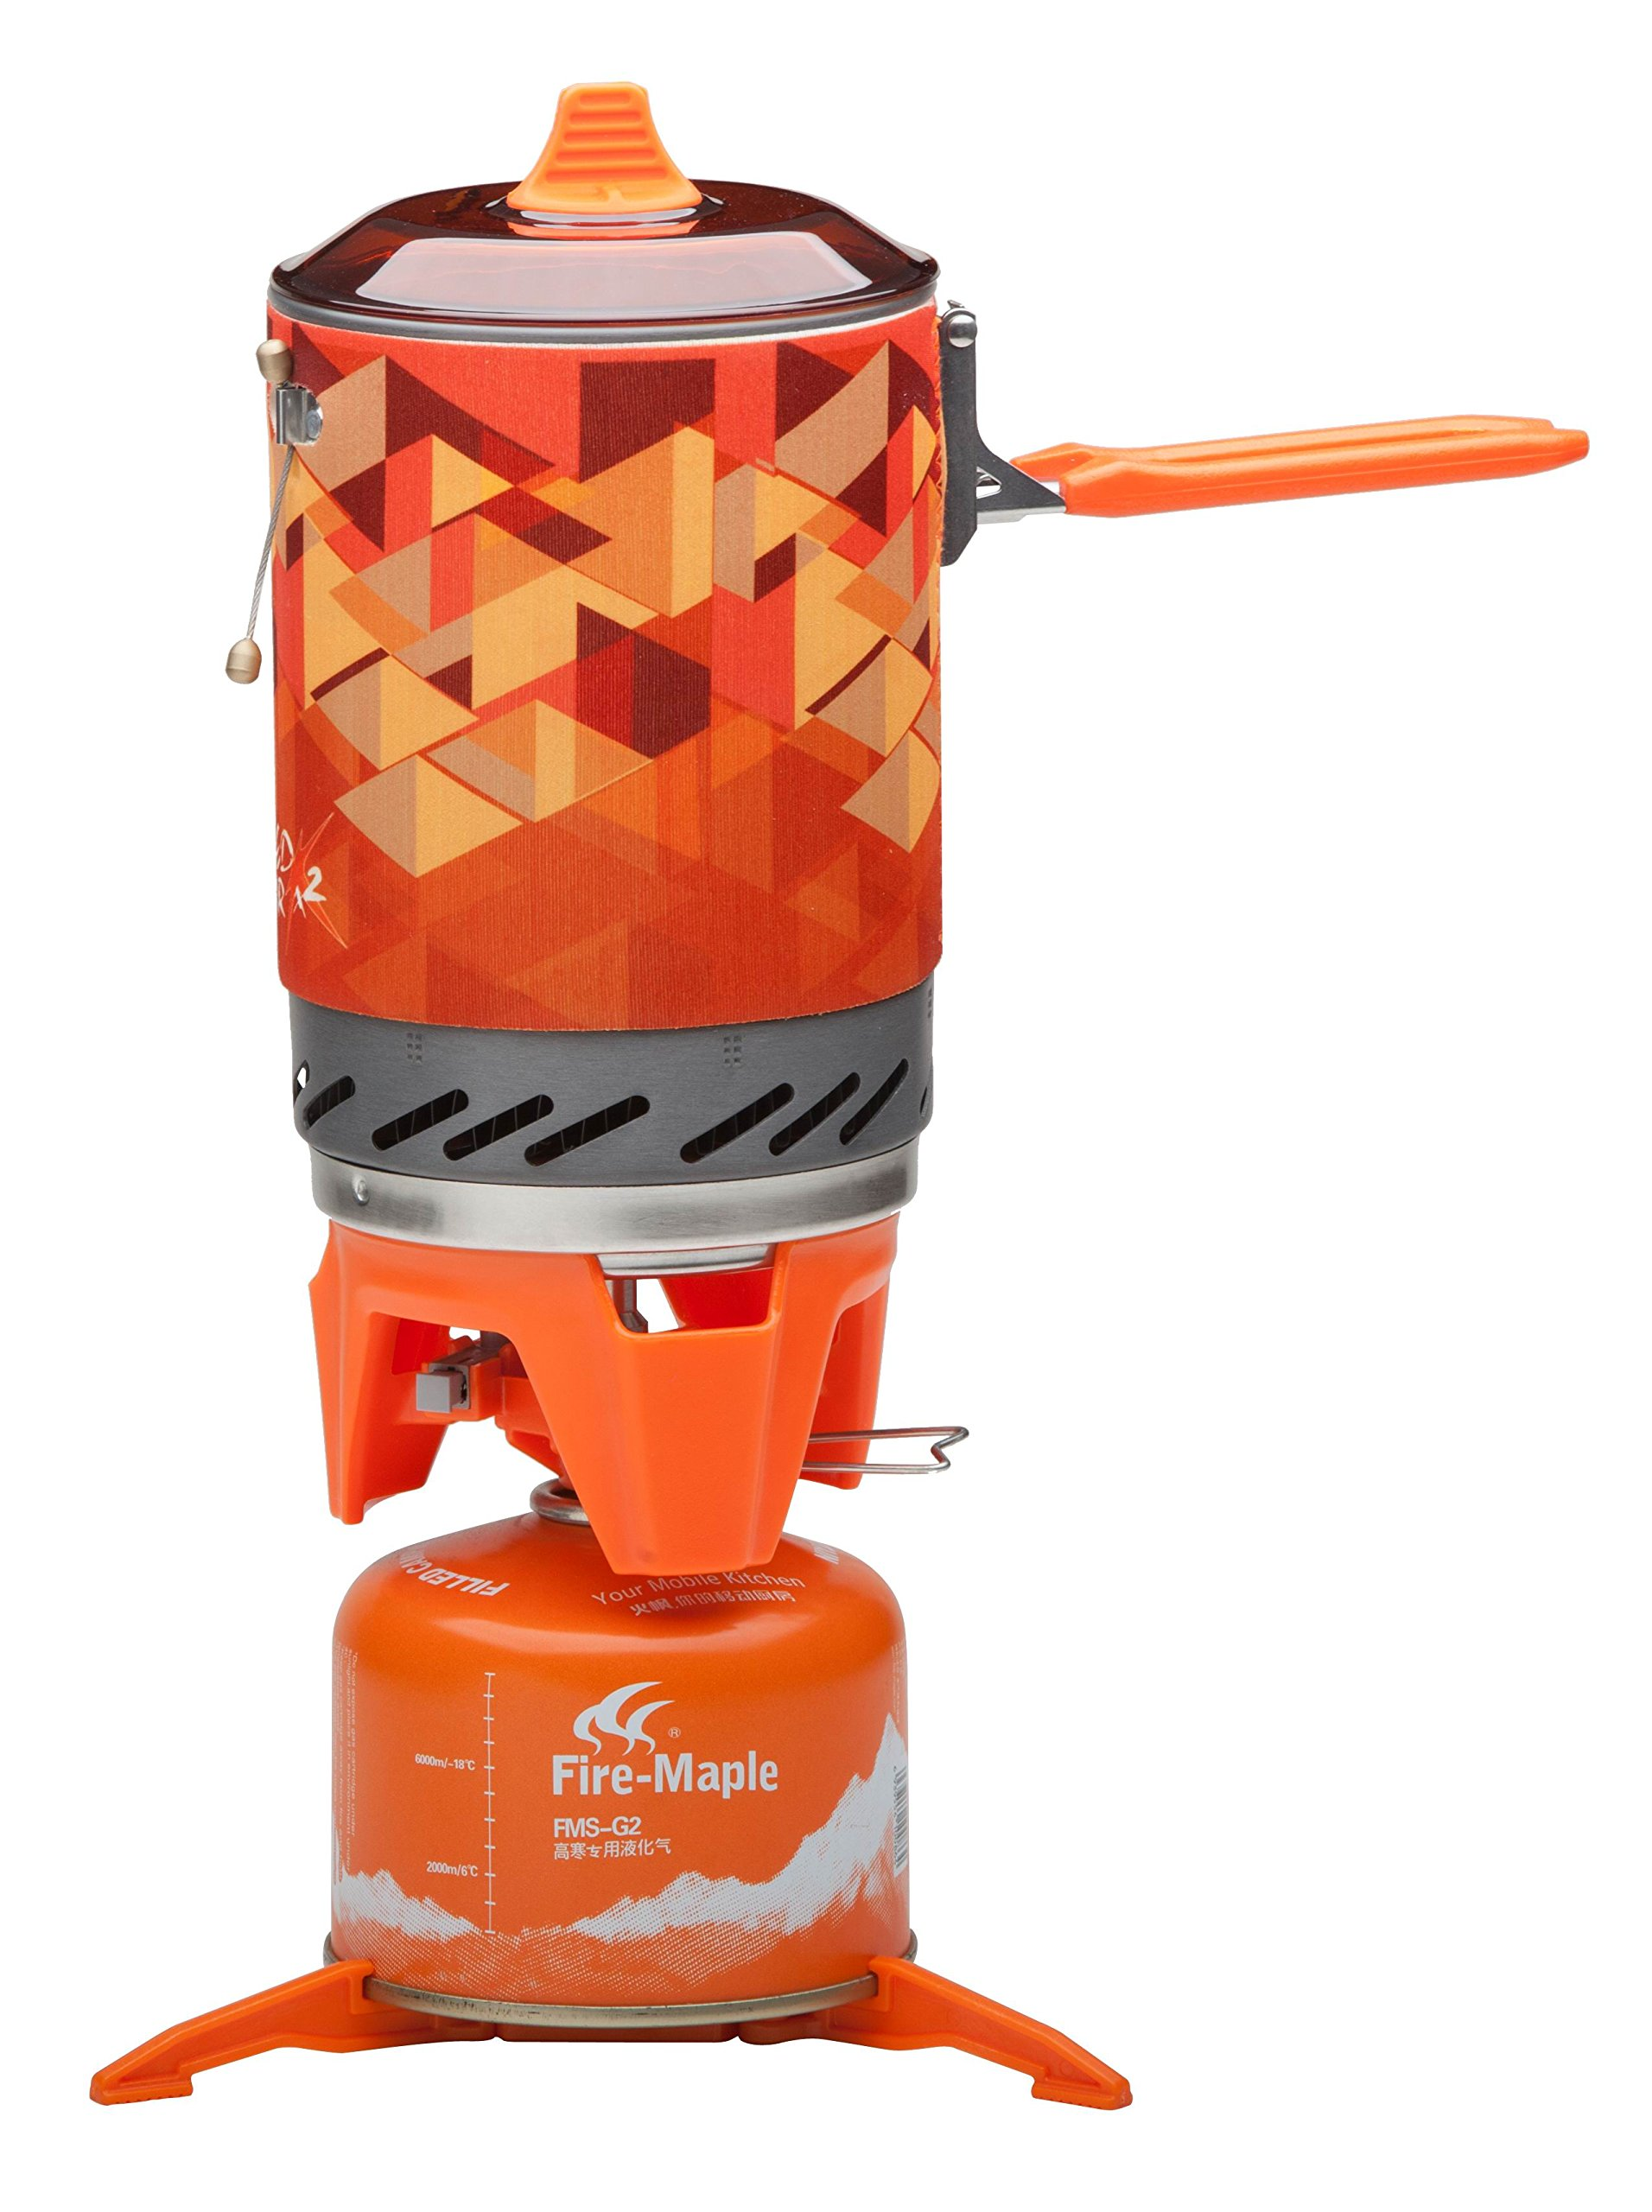 Fire-Maple FMS-X2 Fixed Star 2 Personal Cooking System Outdoor Hiking Camping Equipment Oven with Piezo Ignition Pot Support & Stand - Portable Propane Gas Stove Burner by Fire-Maple